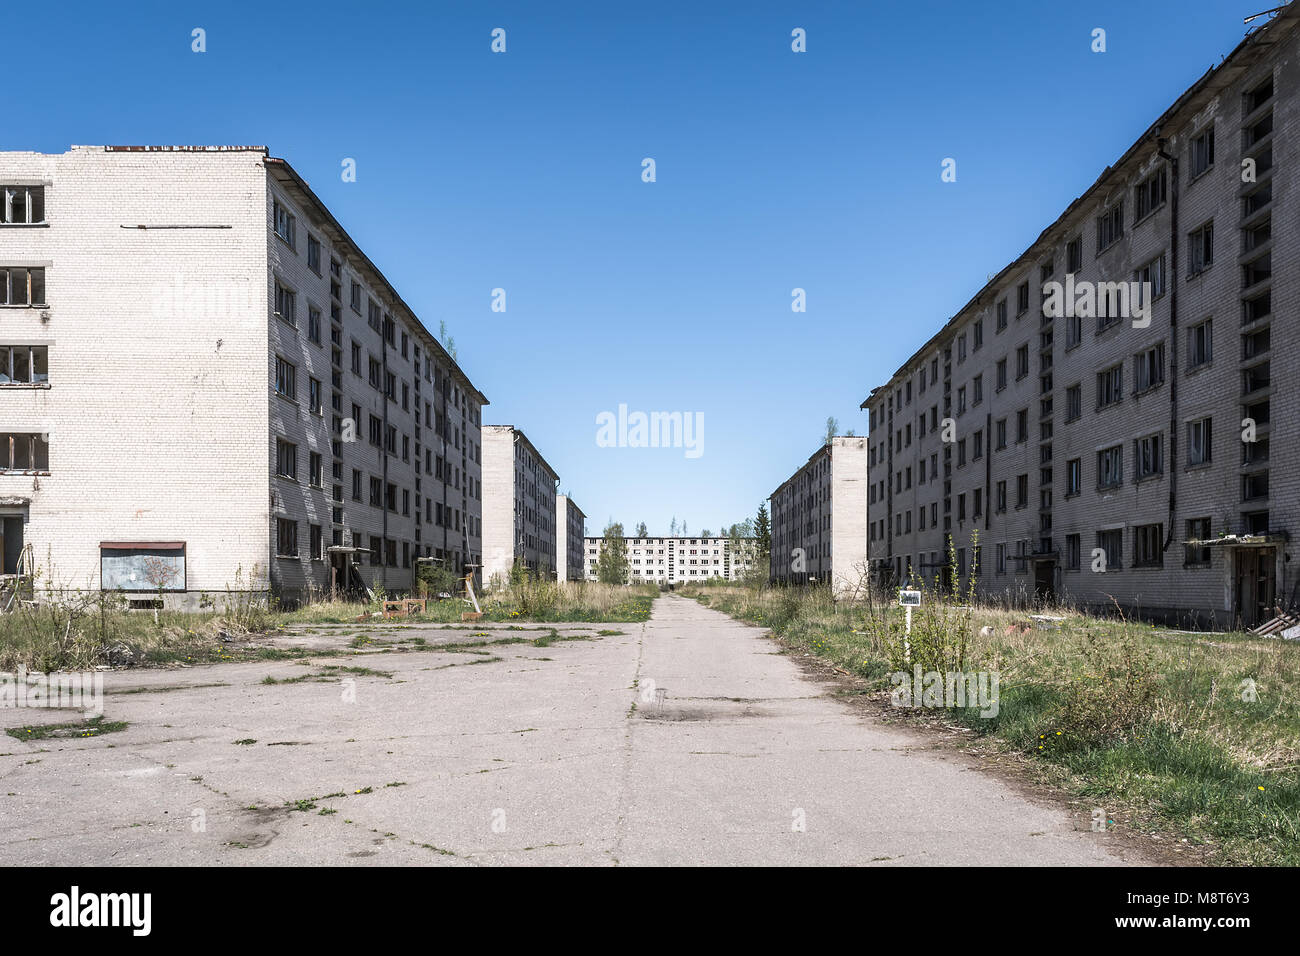 Desolate soviet apartment blocks in Skrunda, Latvia. Former dormitory district in the soviet military base in Skrunda - Stock Image